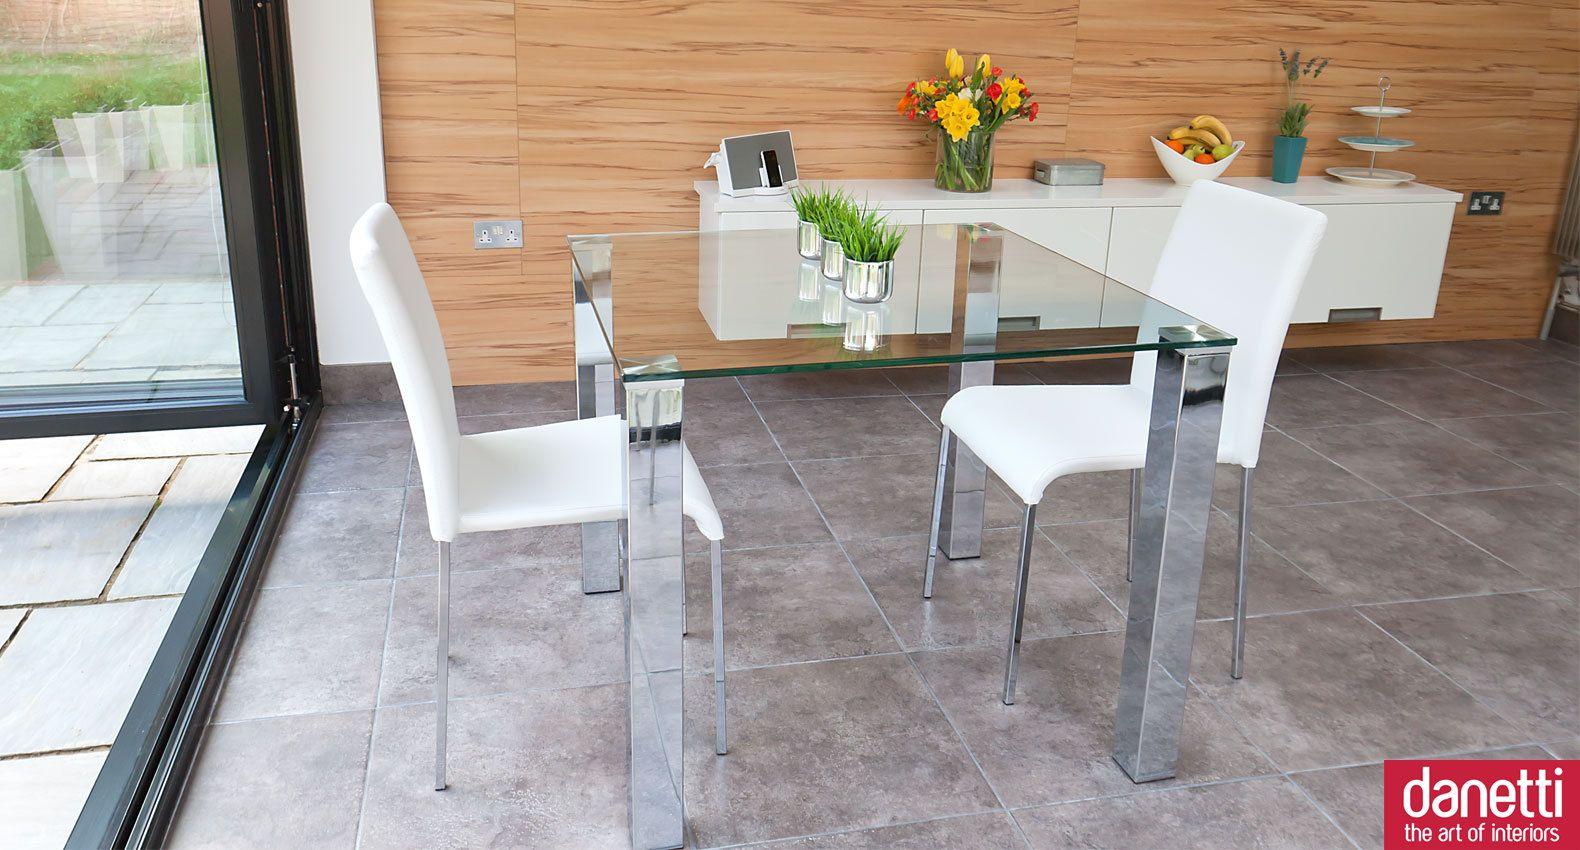 A Chic Modern Small Glass Dining Set With Two Or Four Tori Modern - Small glass dining table for 2